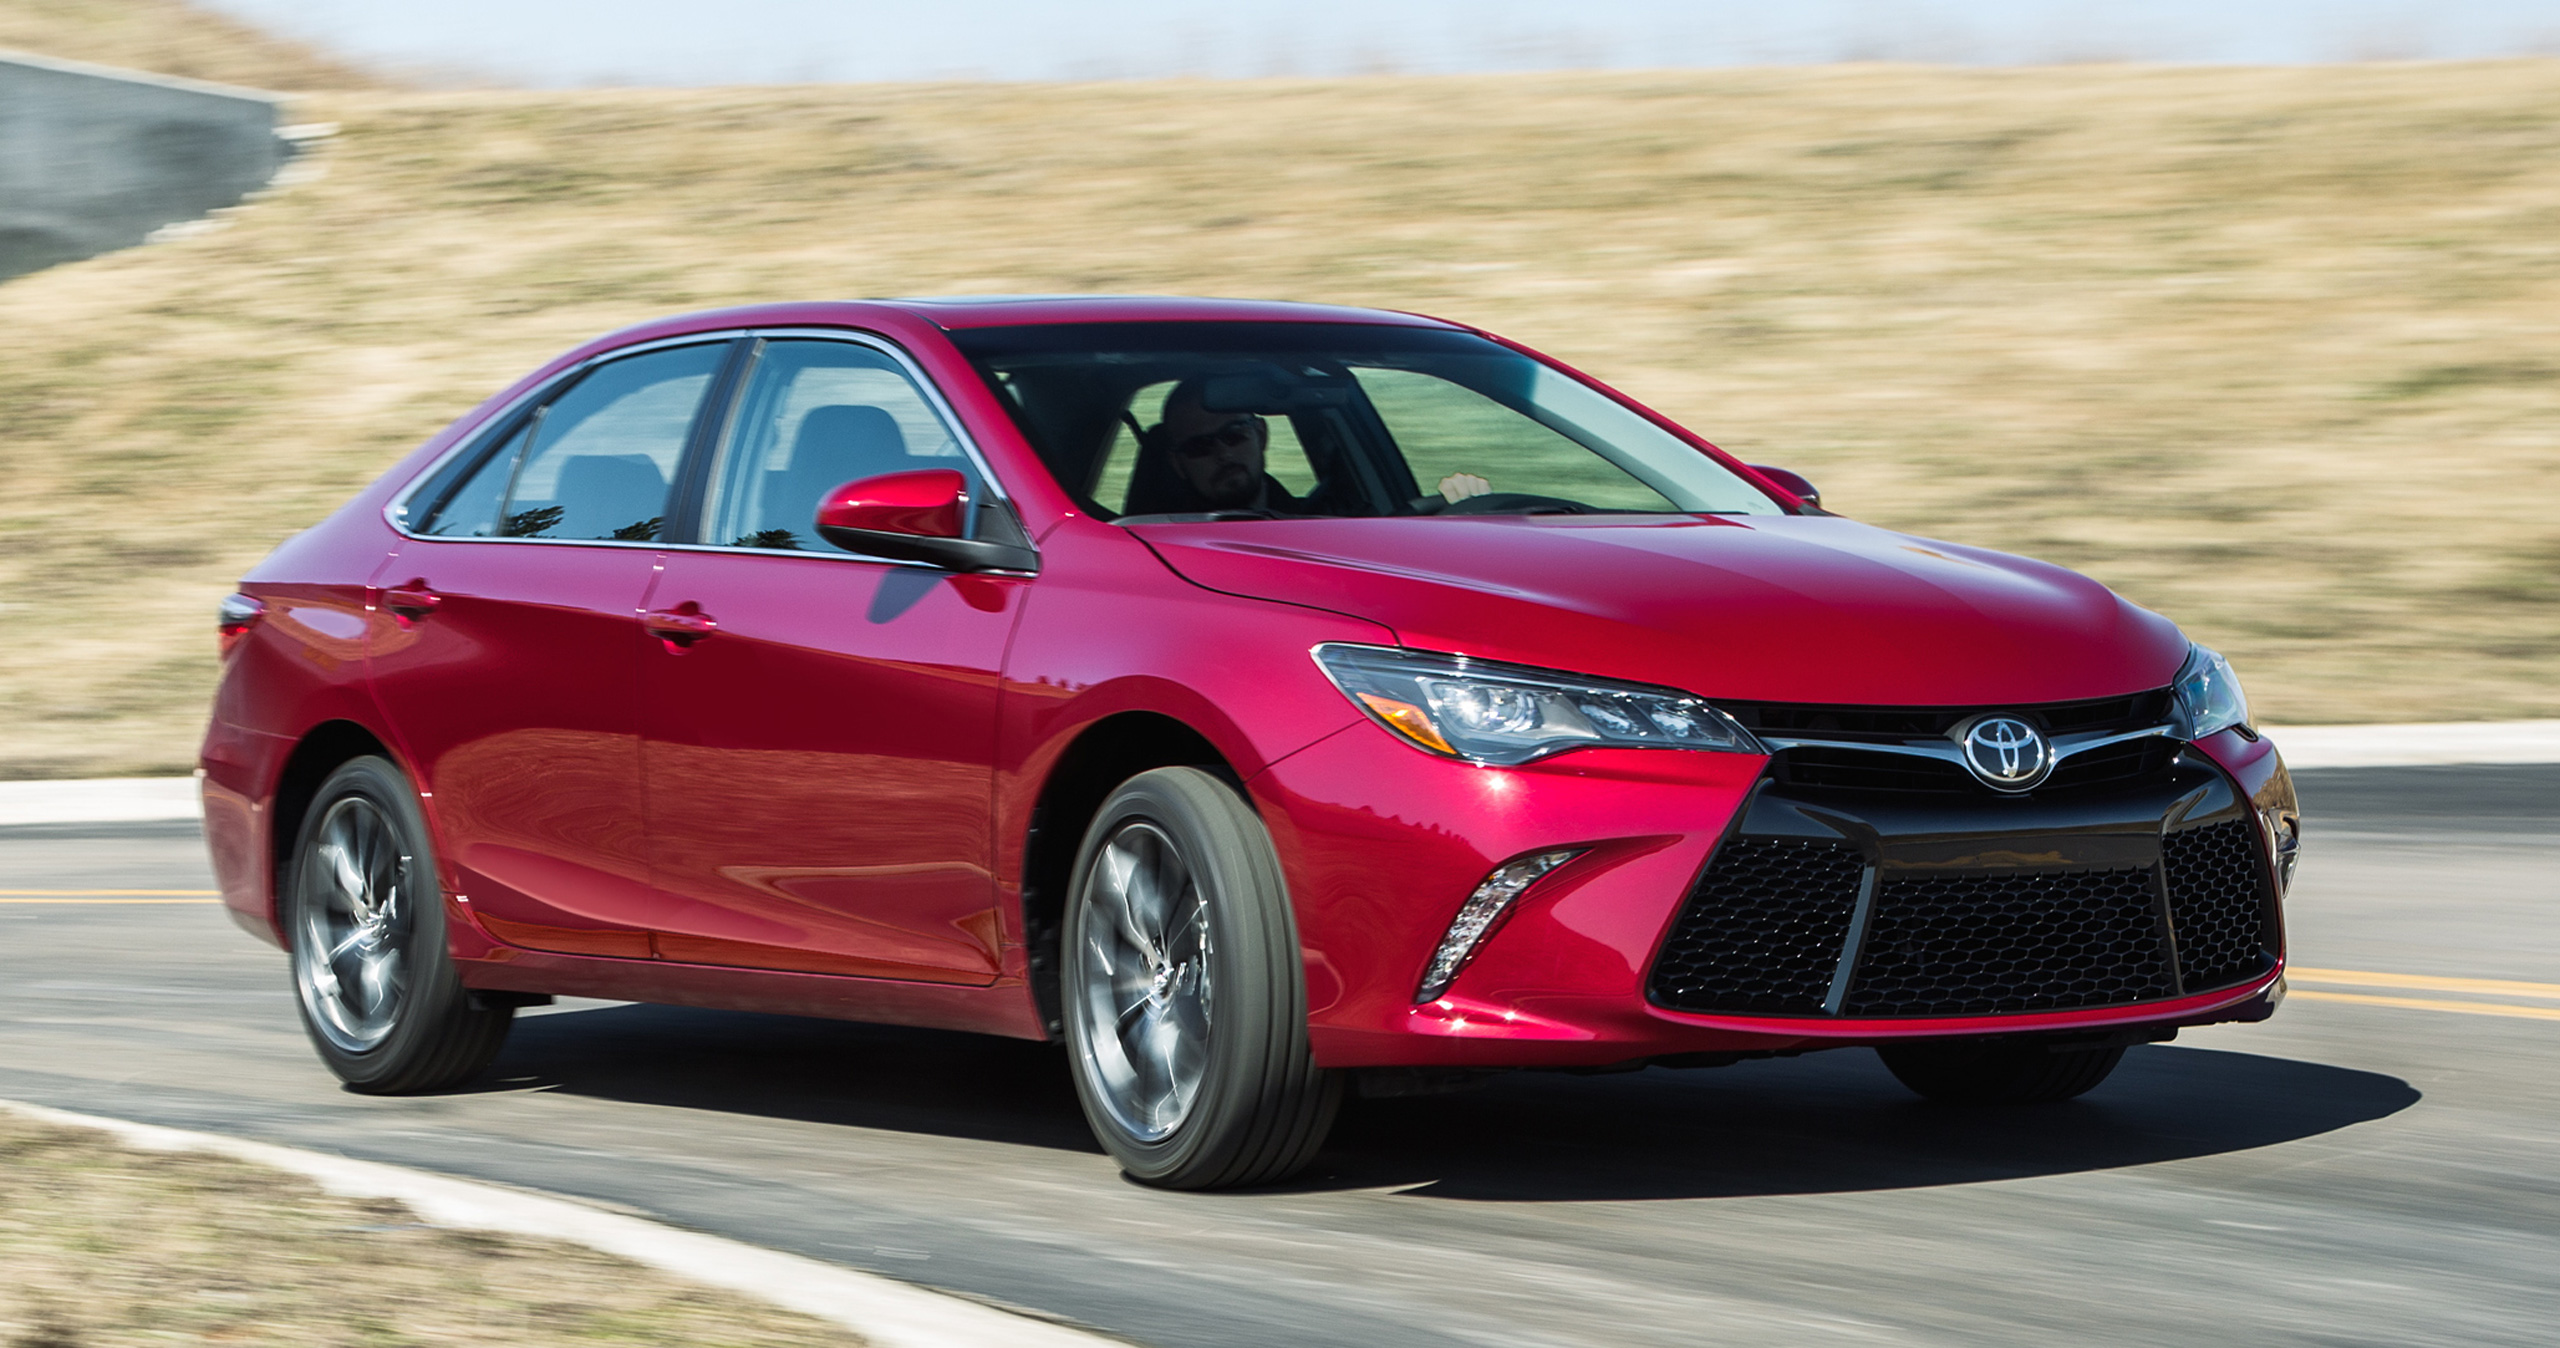 all new camry 2018 malaysia harga agya trd 2015 toyota  major facelift unveiled in nyc image